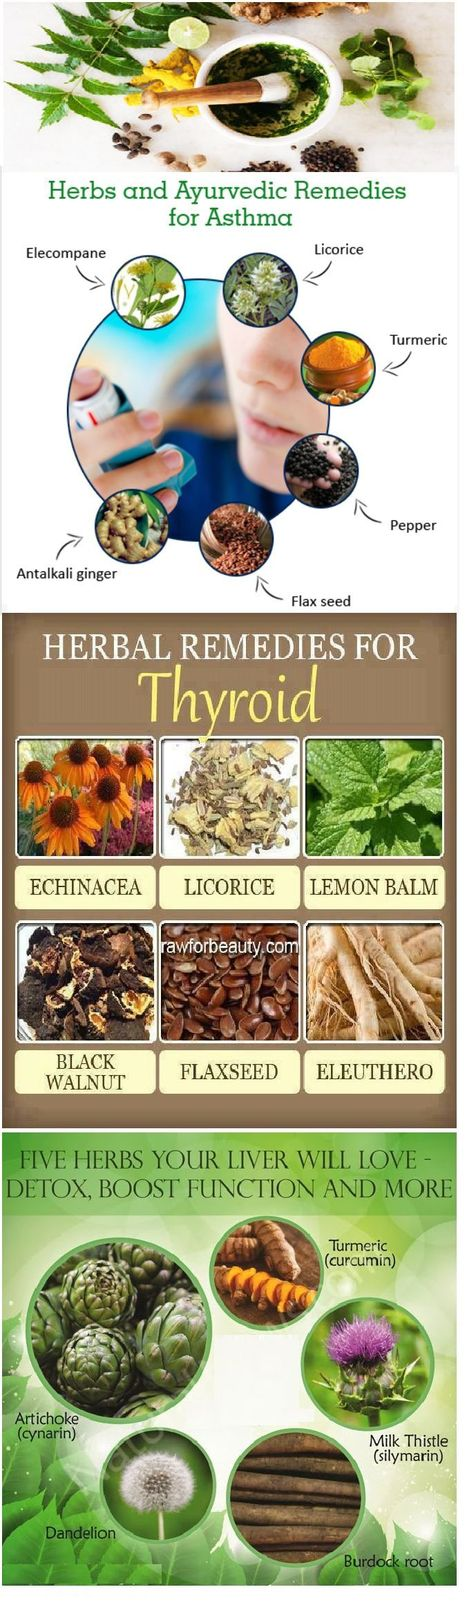 Ayurvedic Herbal Products and Remedies | All About Health Sports & Fitness - DietKart | Scoop.it